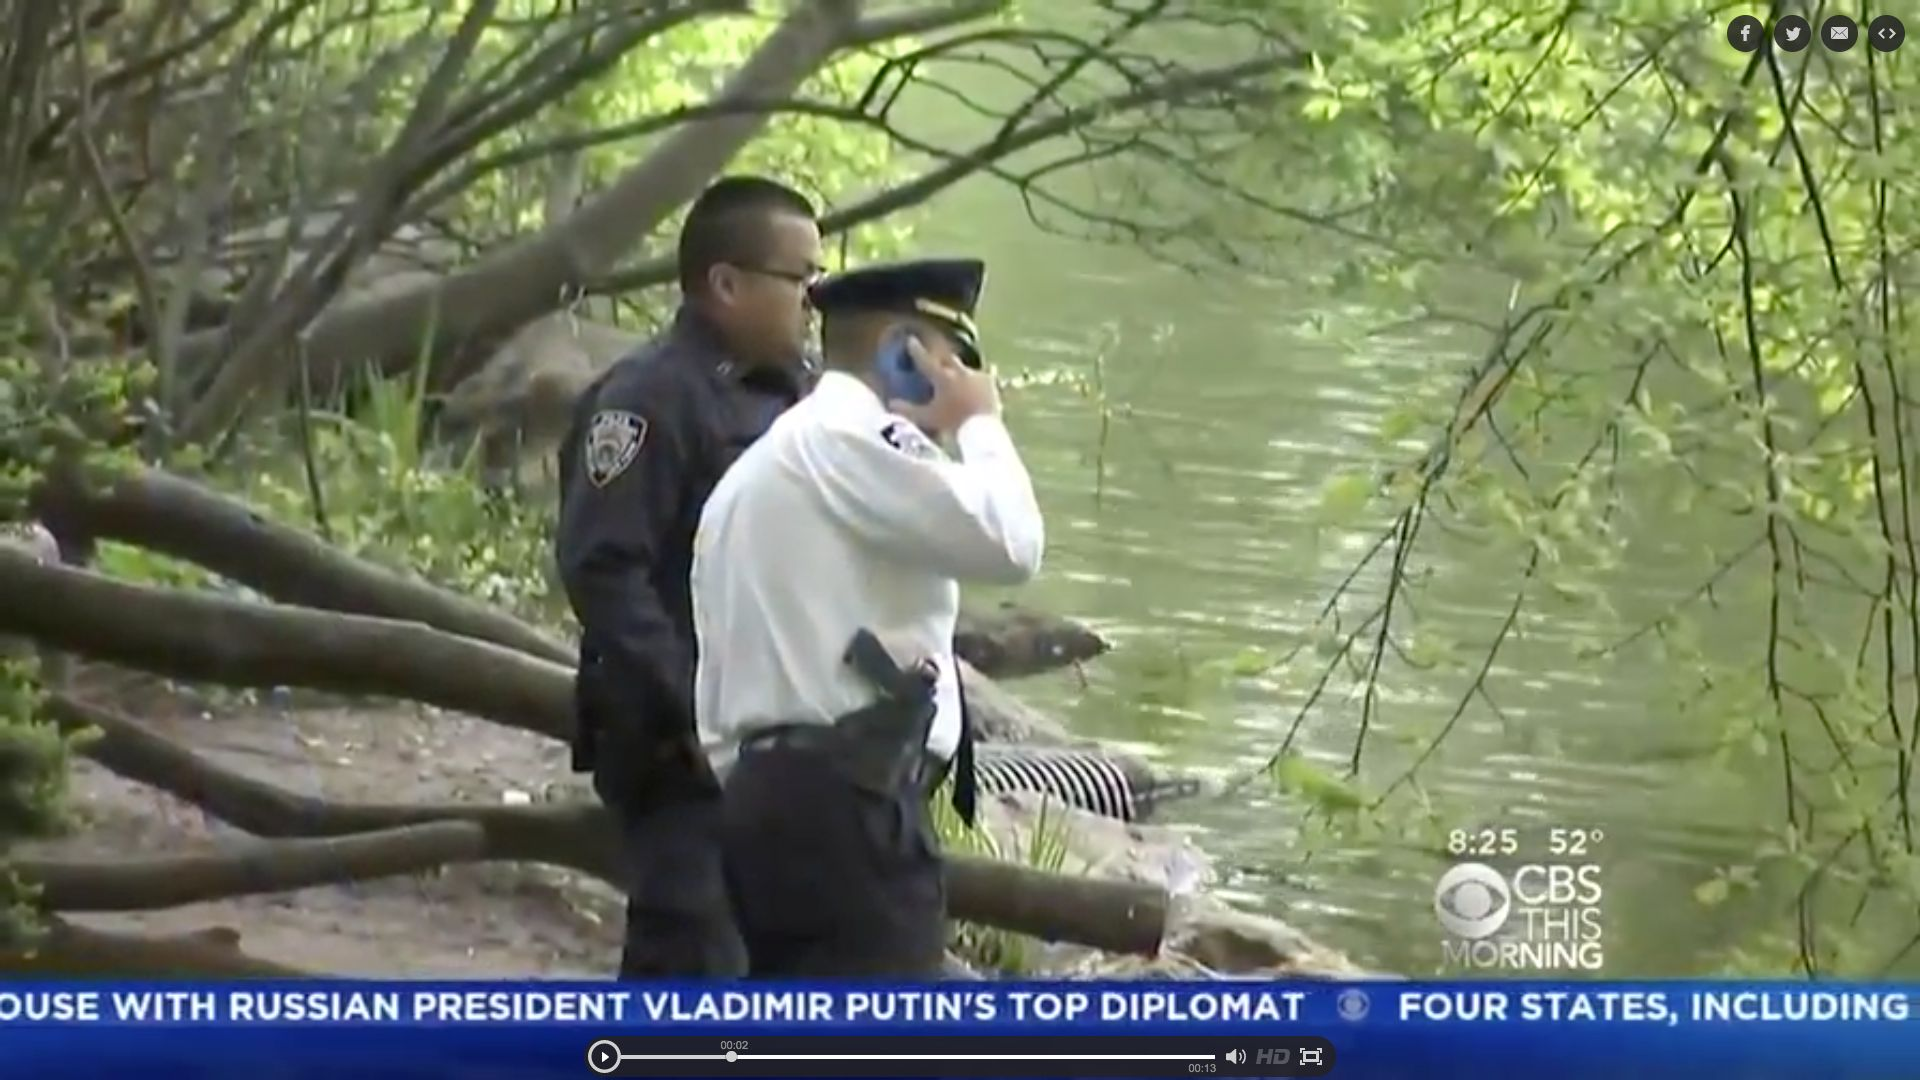 Police are seen at a Central Park pond on Wednesday after a body was recovered from the water